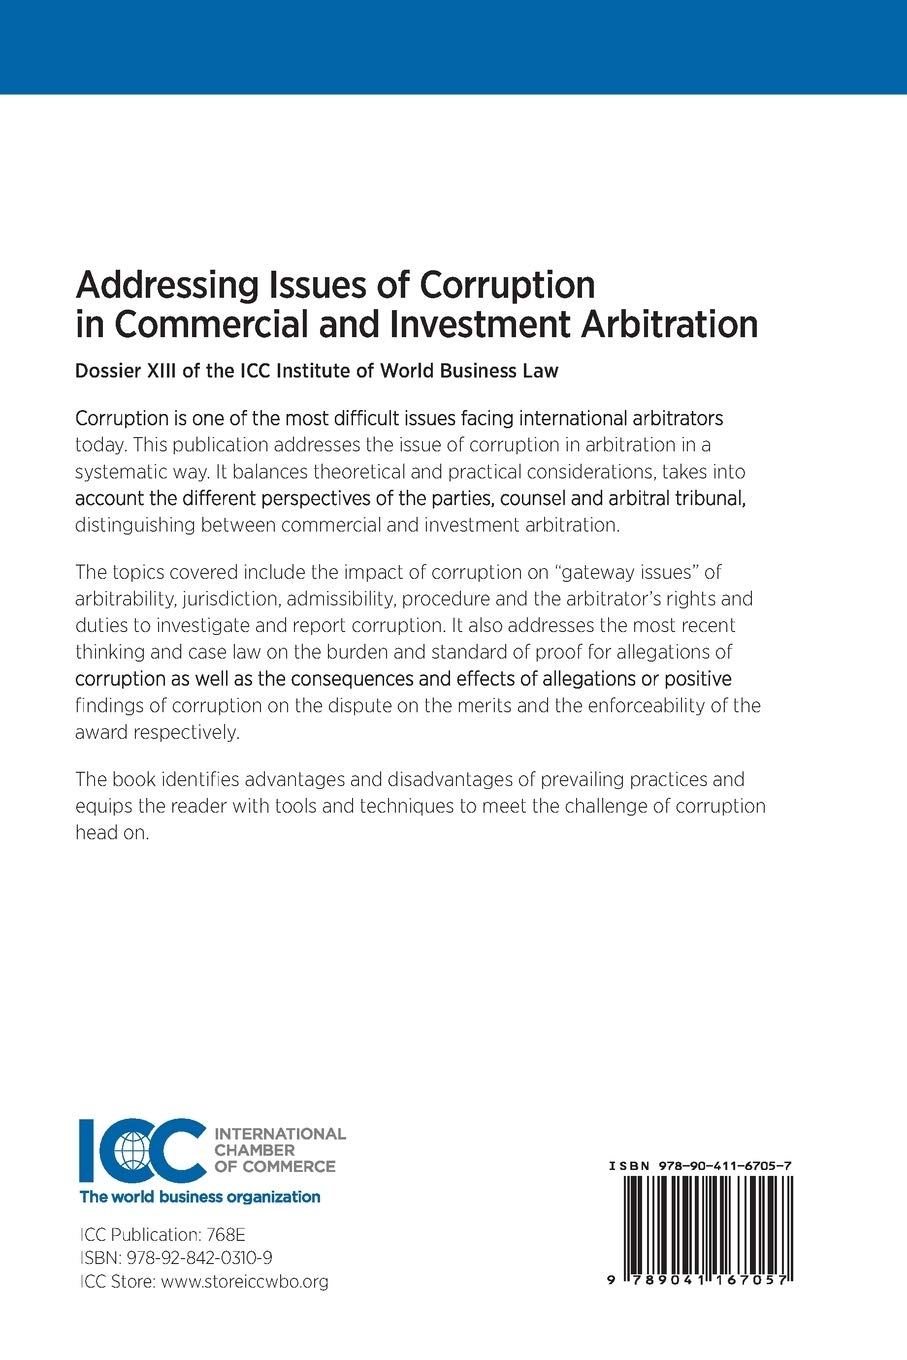 Addressing issues of corruption in commercial and investment arbitration graham speculative investing